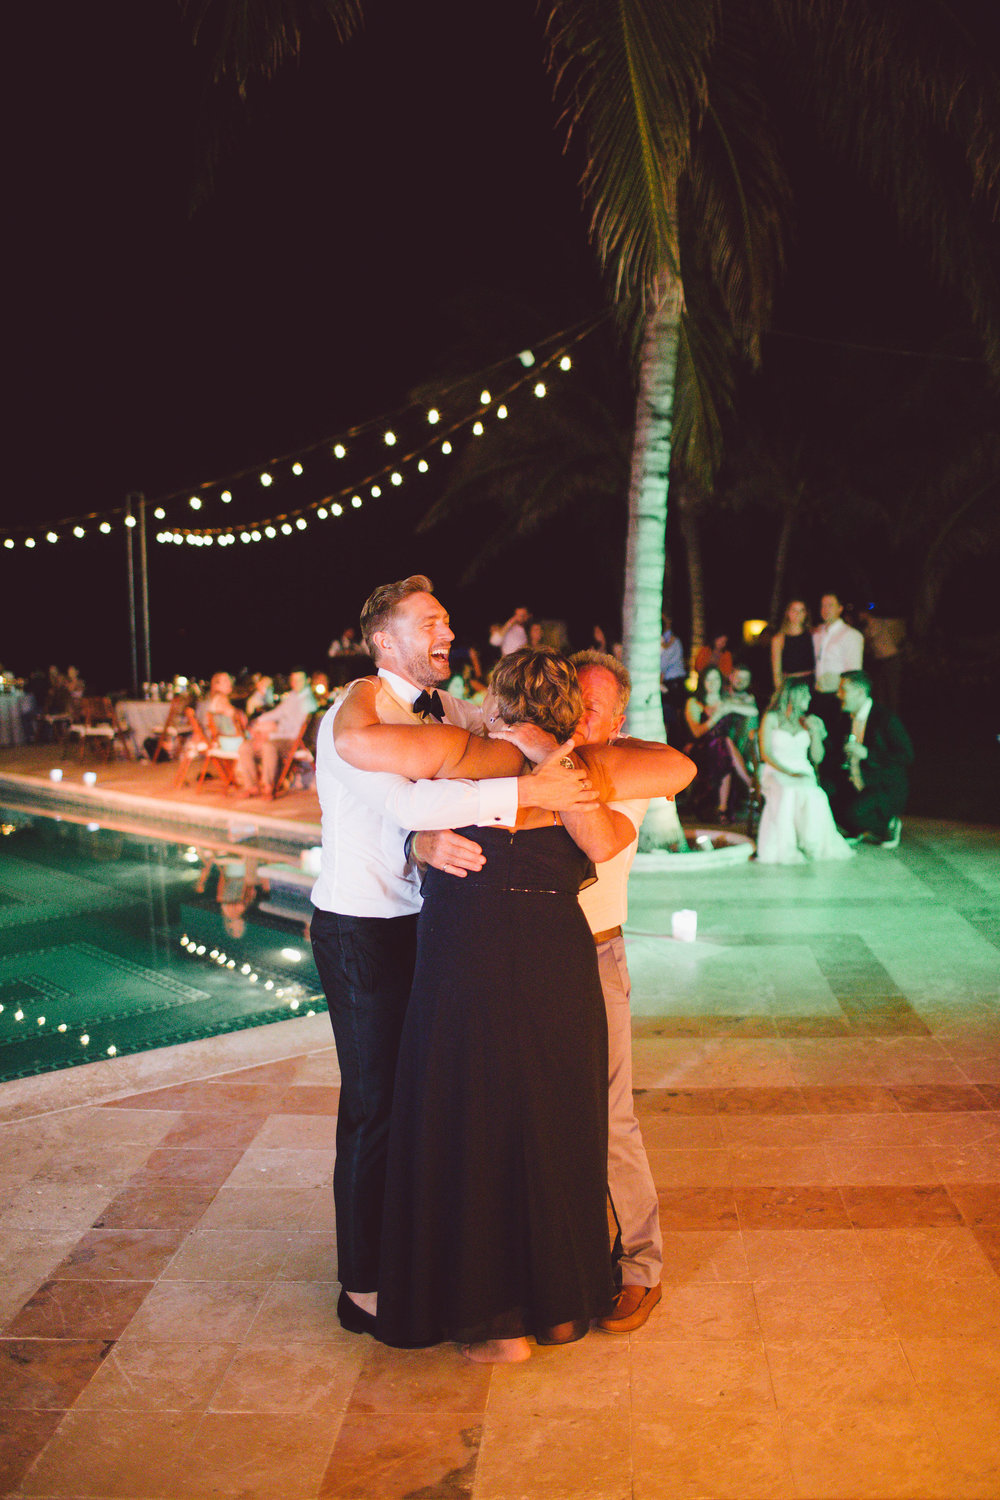 mexico_wedding_cancun_villa_la_joya_evangeline_lane_144.jpg